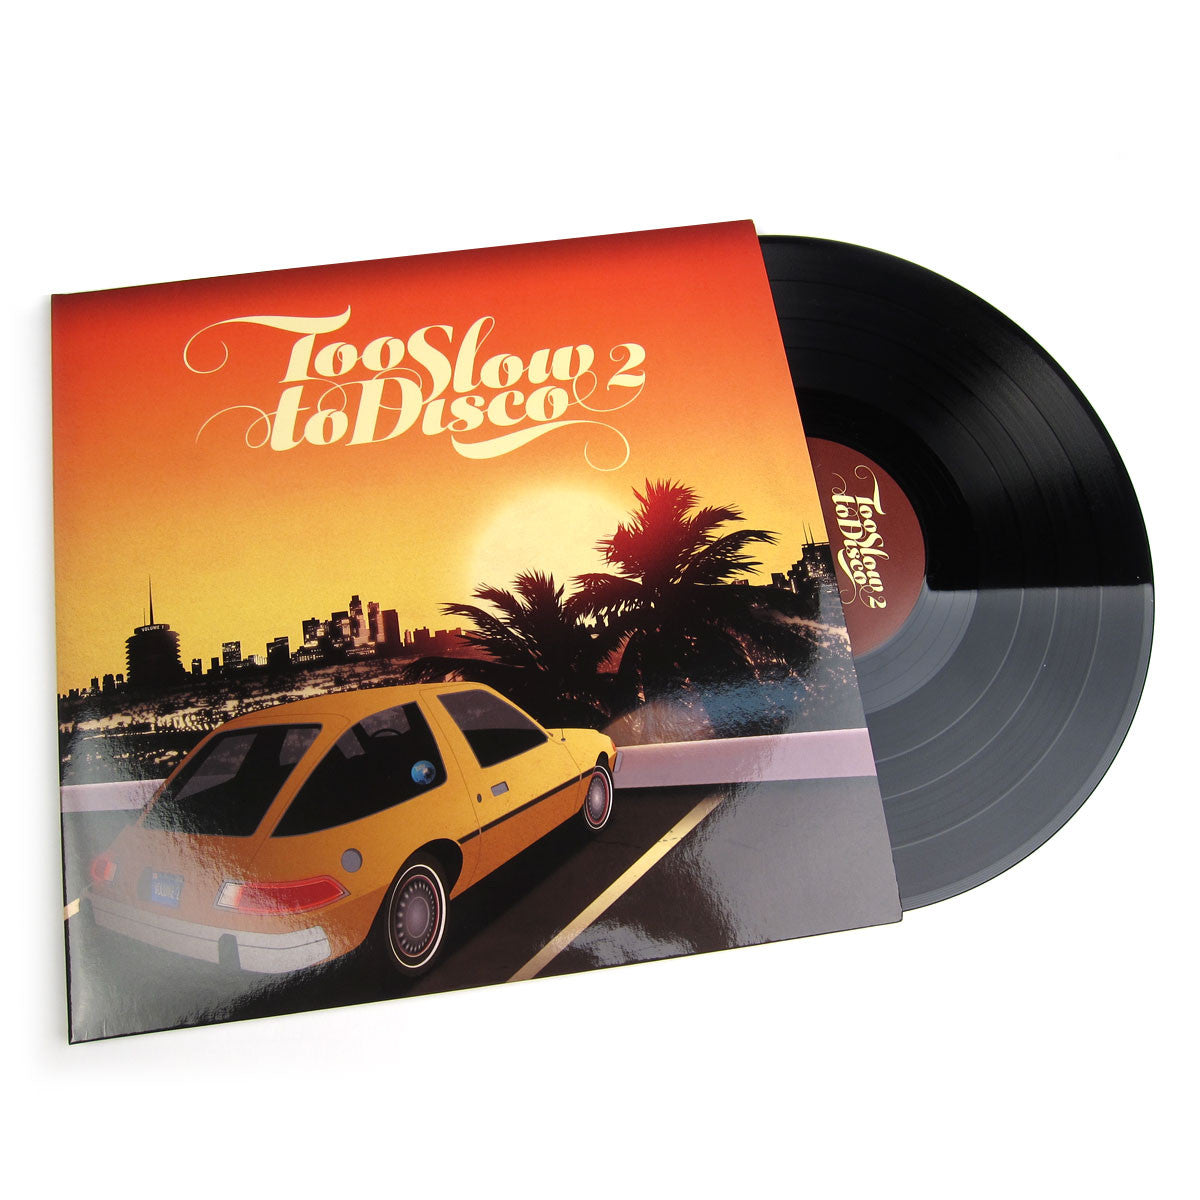 How Do You Are?: Too Slow To Disco 2 (180g) Vinyl 2LP